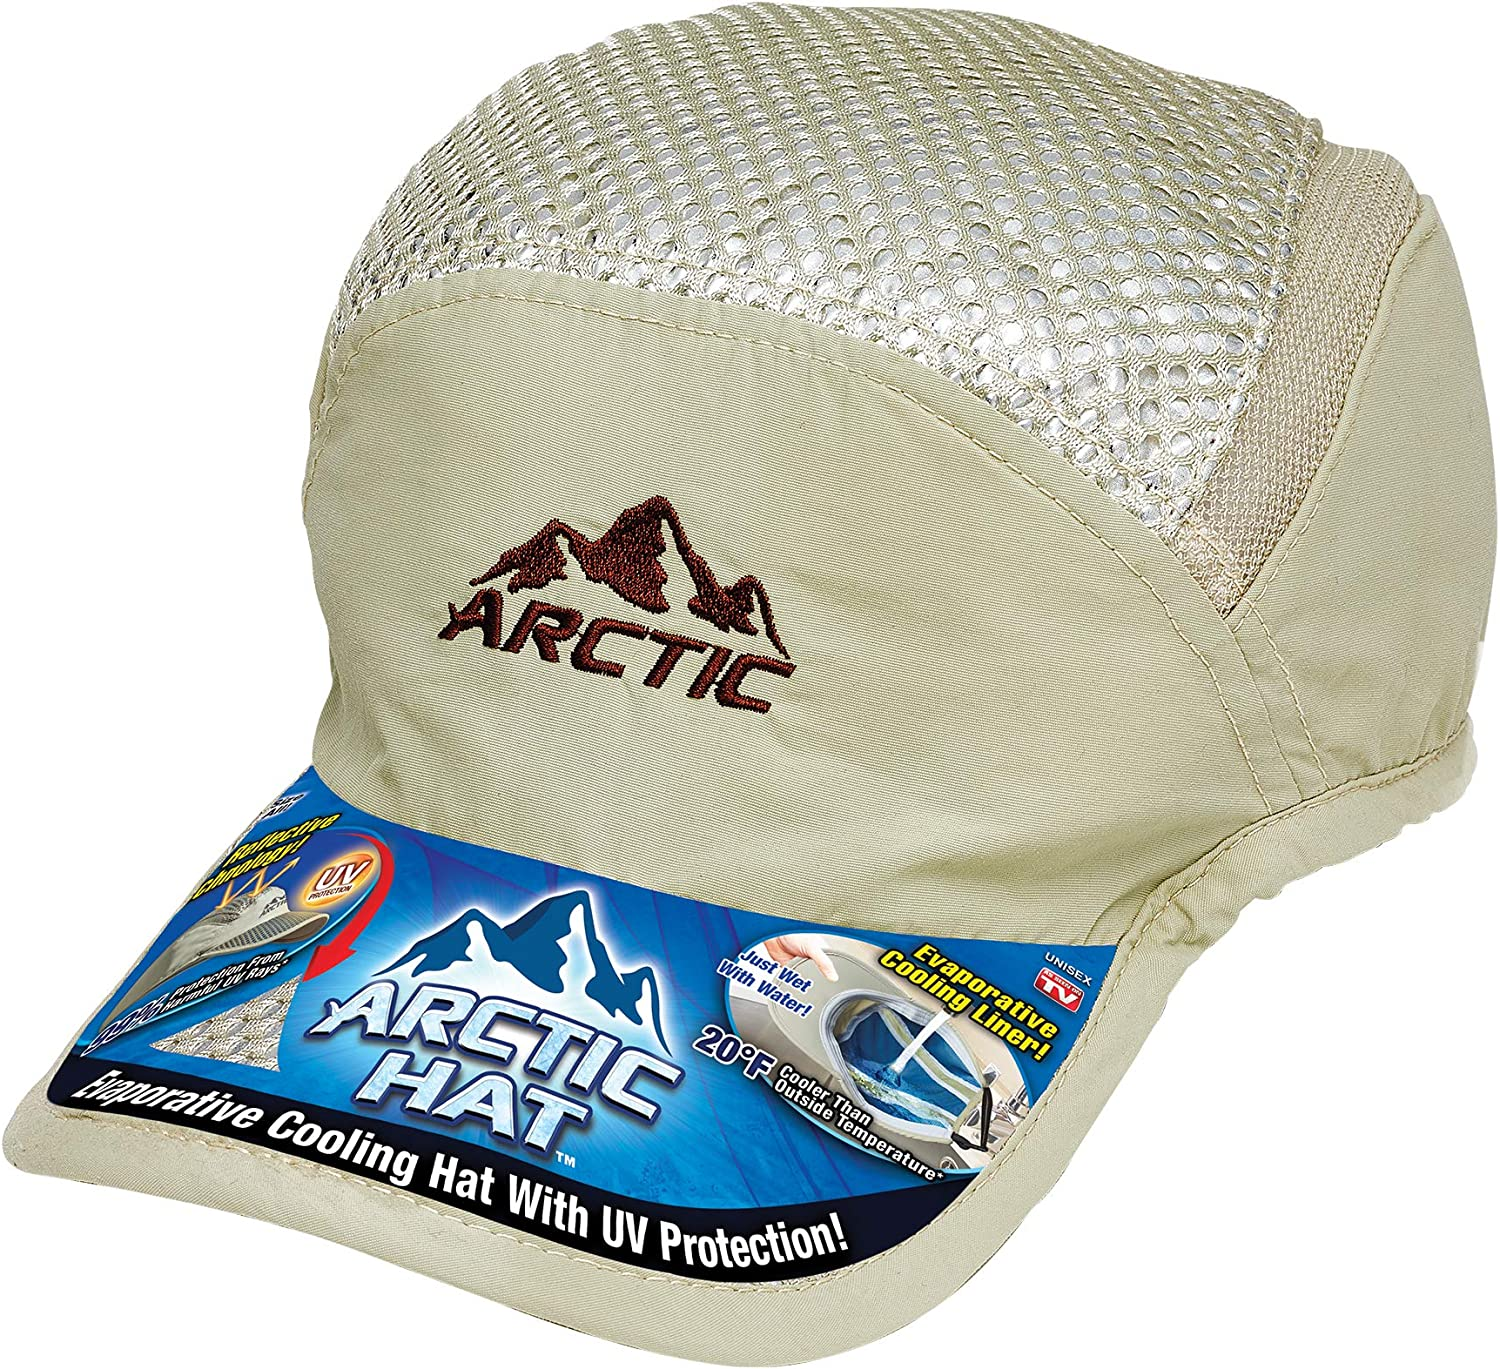 Ontel Arctic Cap, Beige, Adjustable